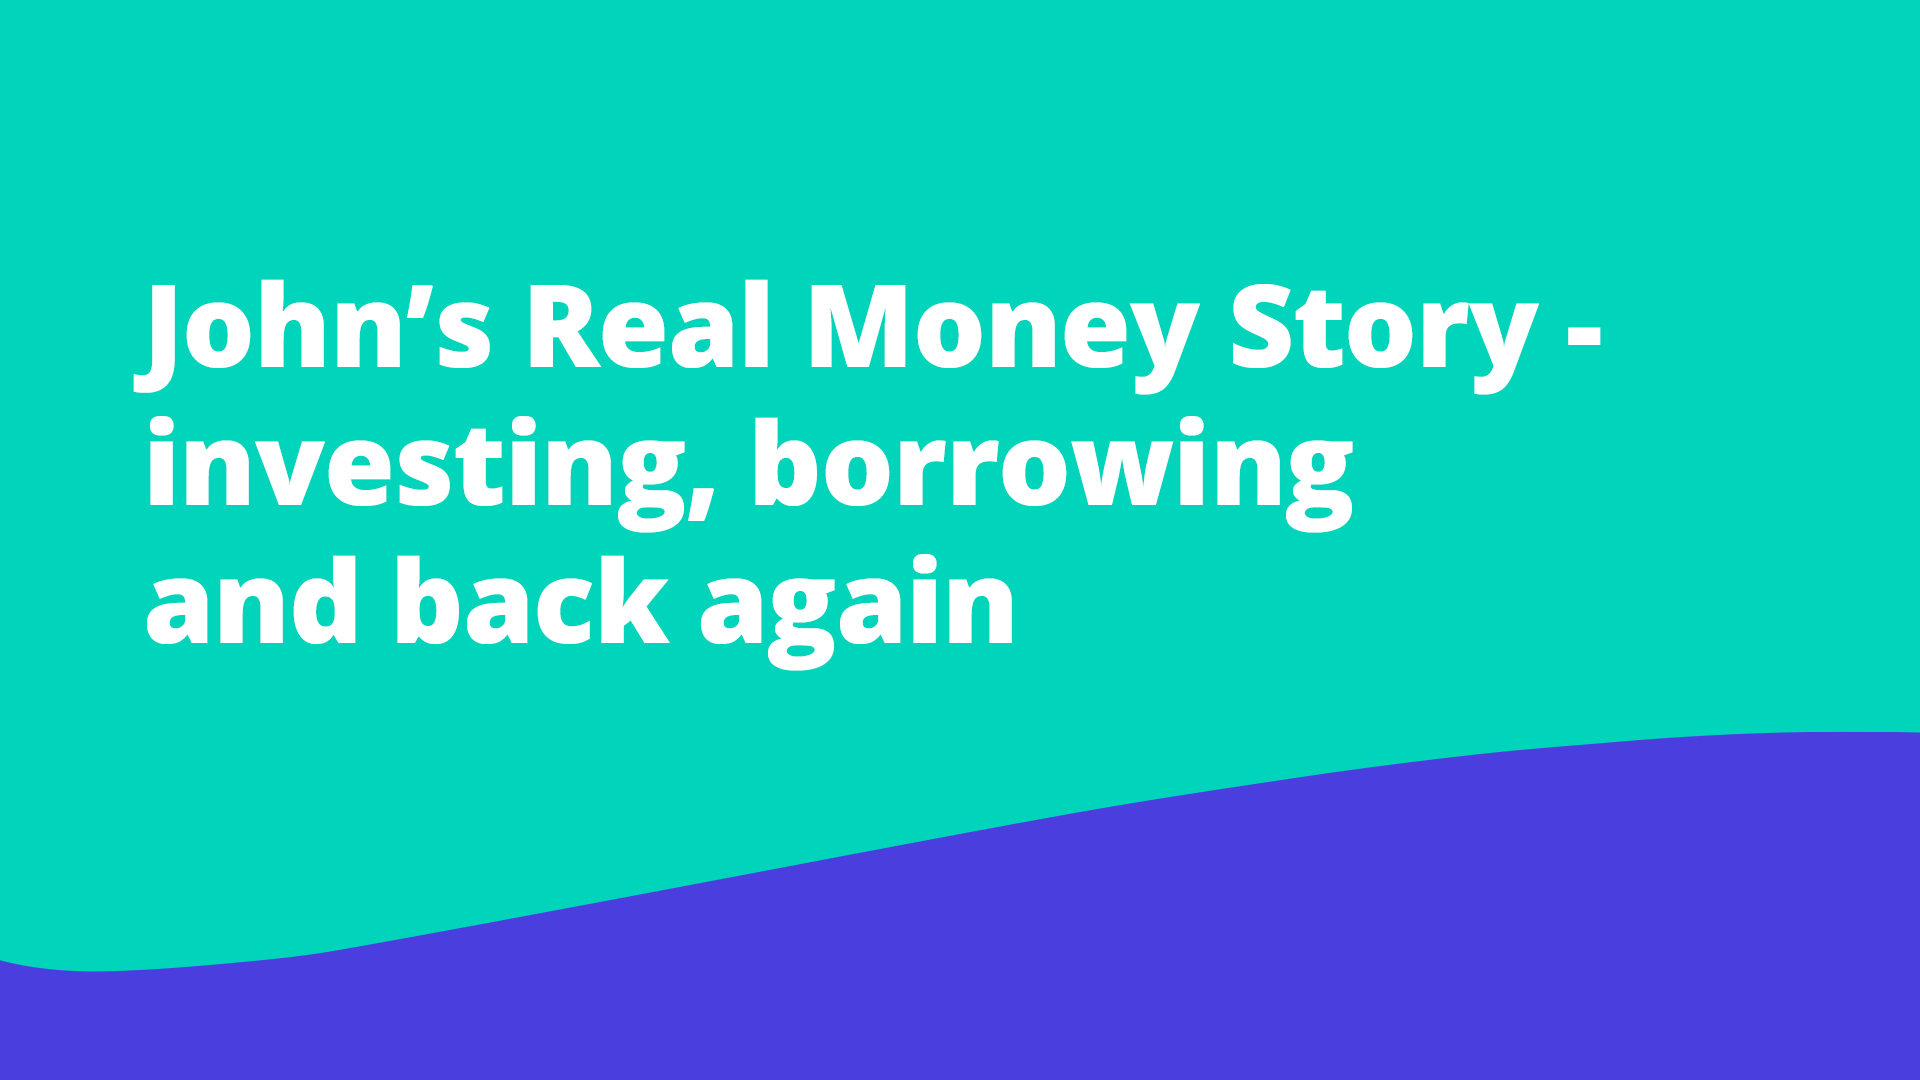 john-s-real-money-story-investing-borrowing-and-back-again